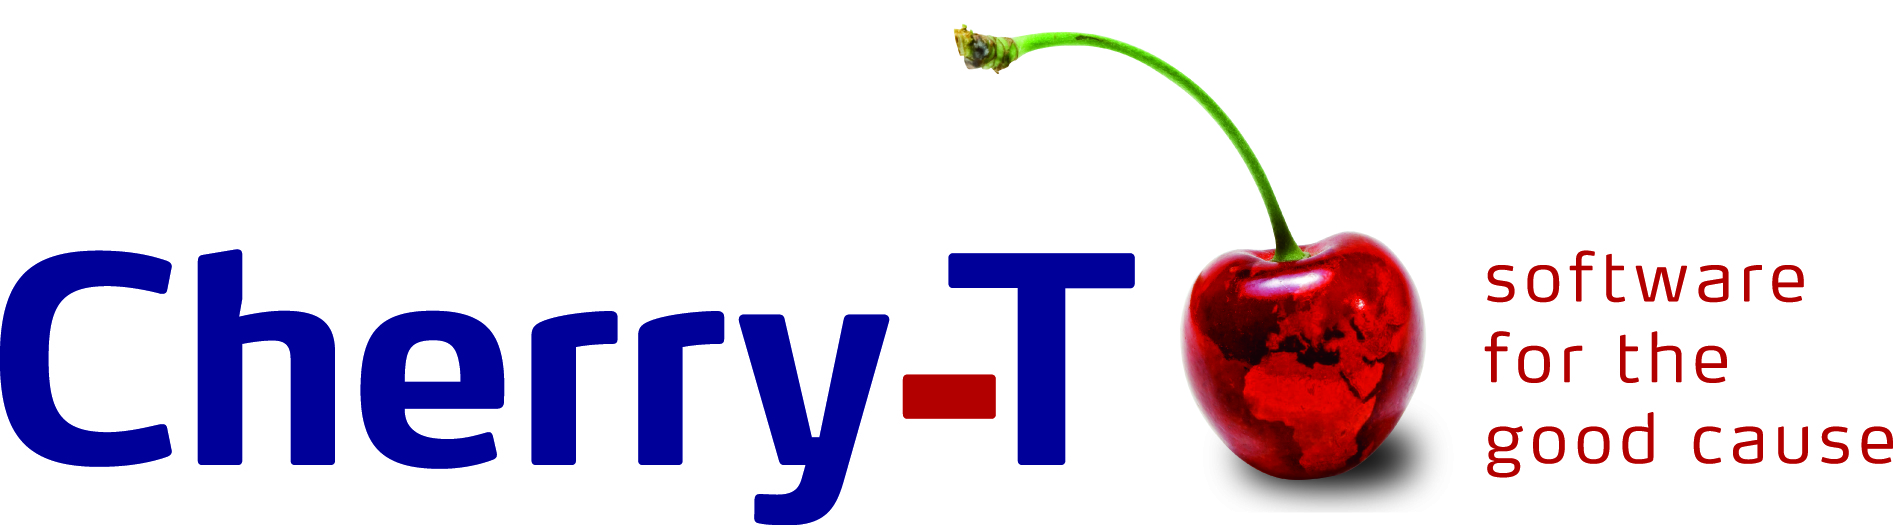 Cherry-t-opdrachtgever-van-lyncwise-executive-search-interim